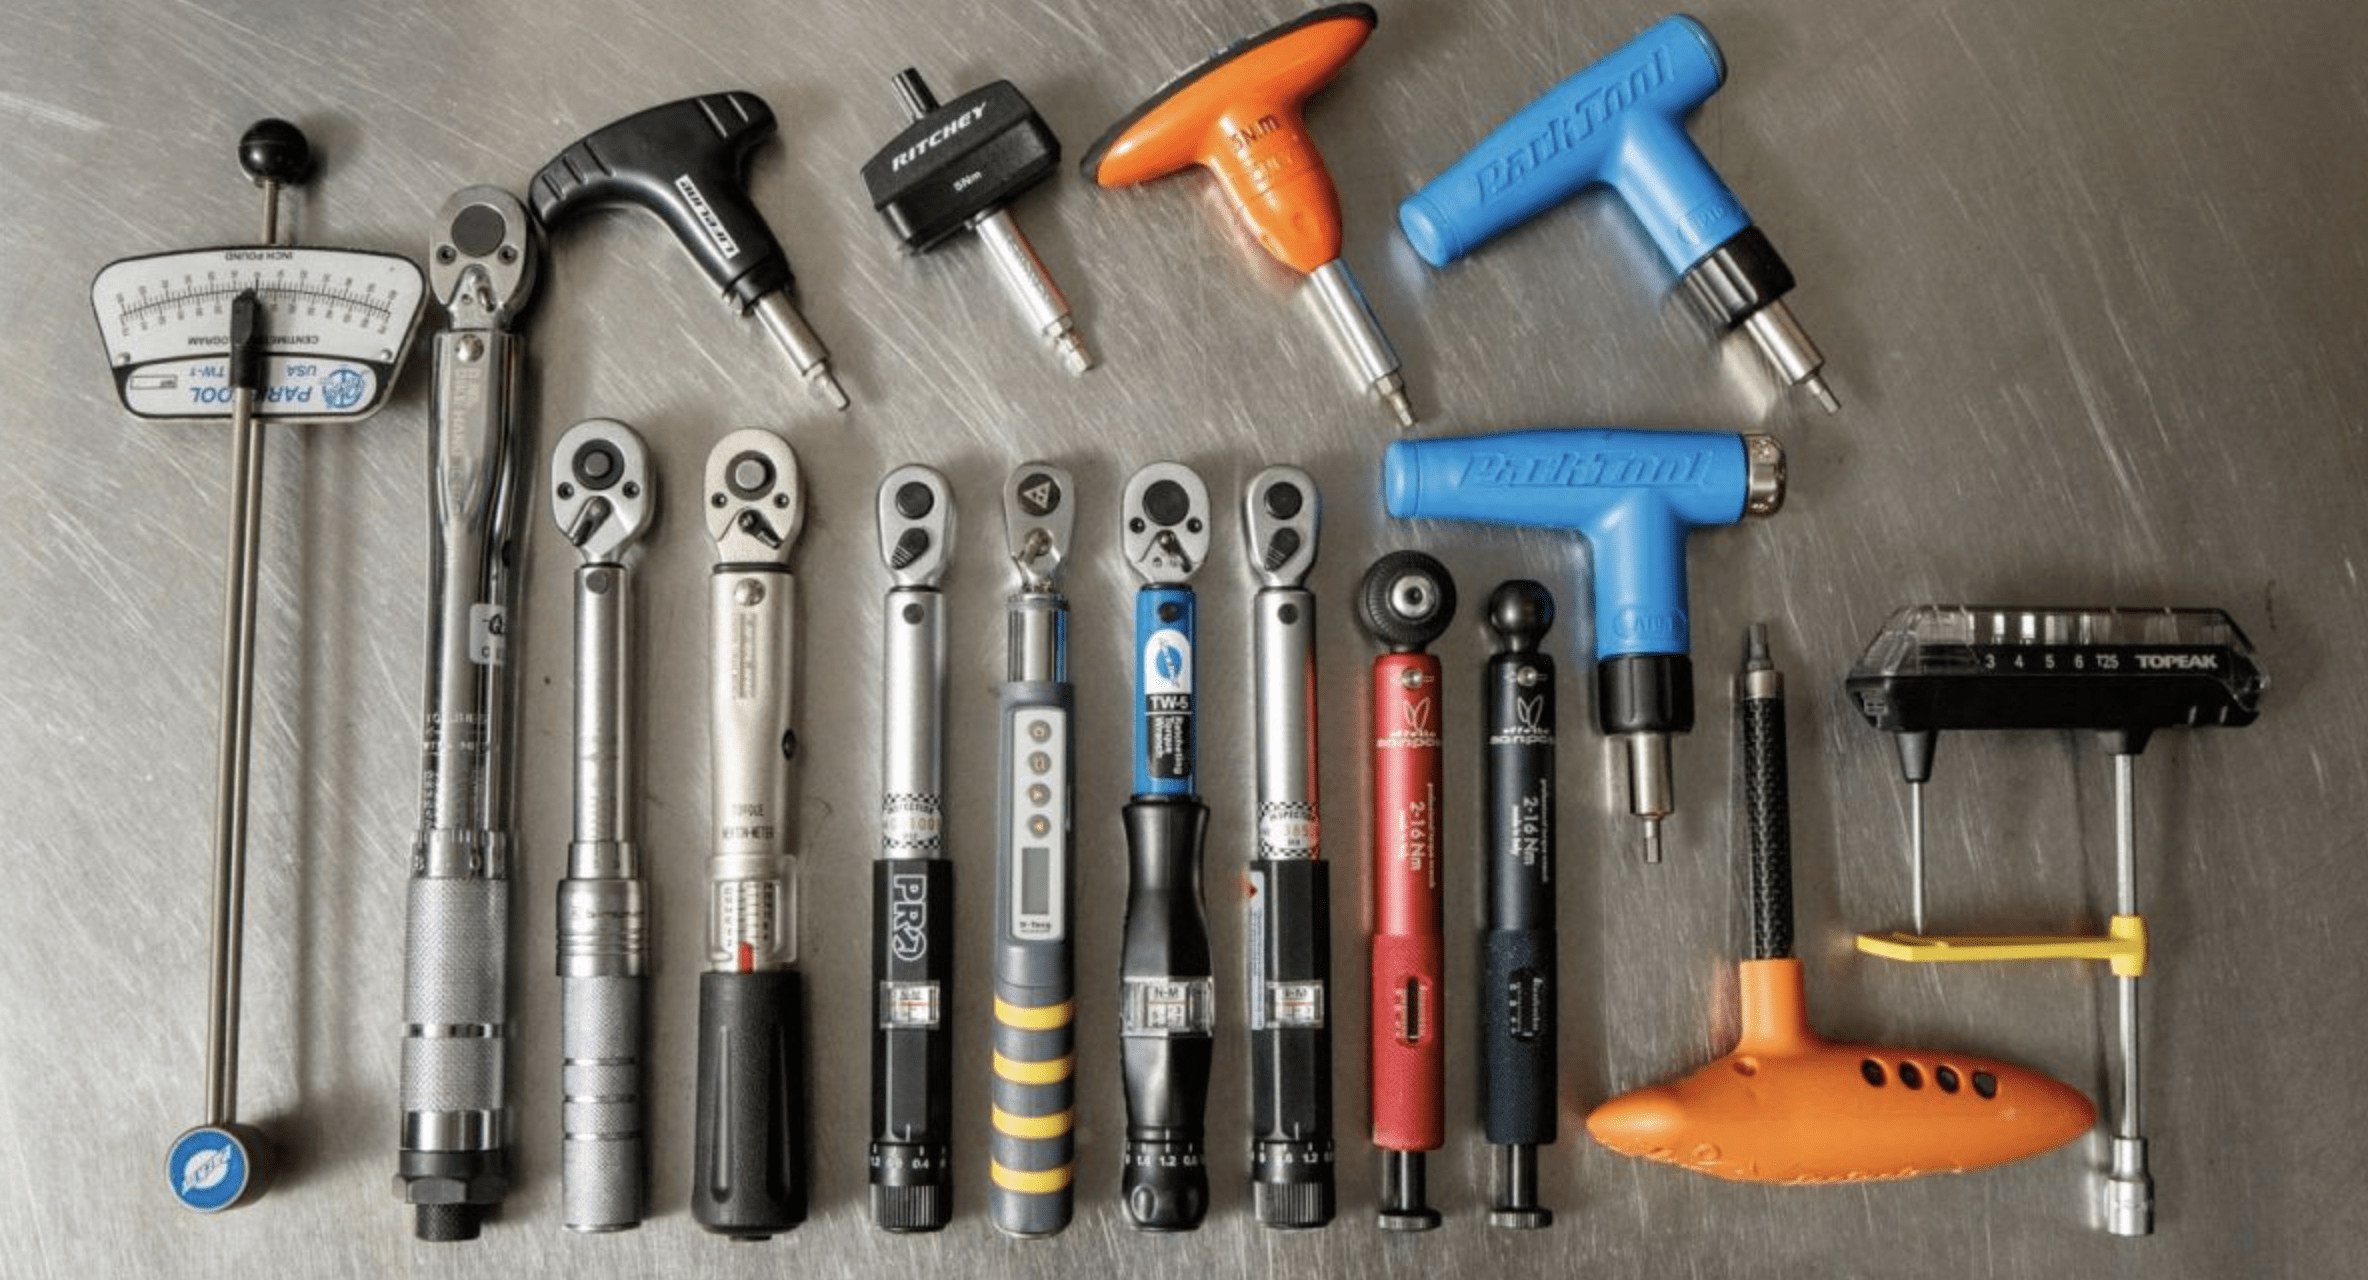 10 Best Torque Wrenches For The Money In 2020 Reviews Buying